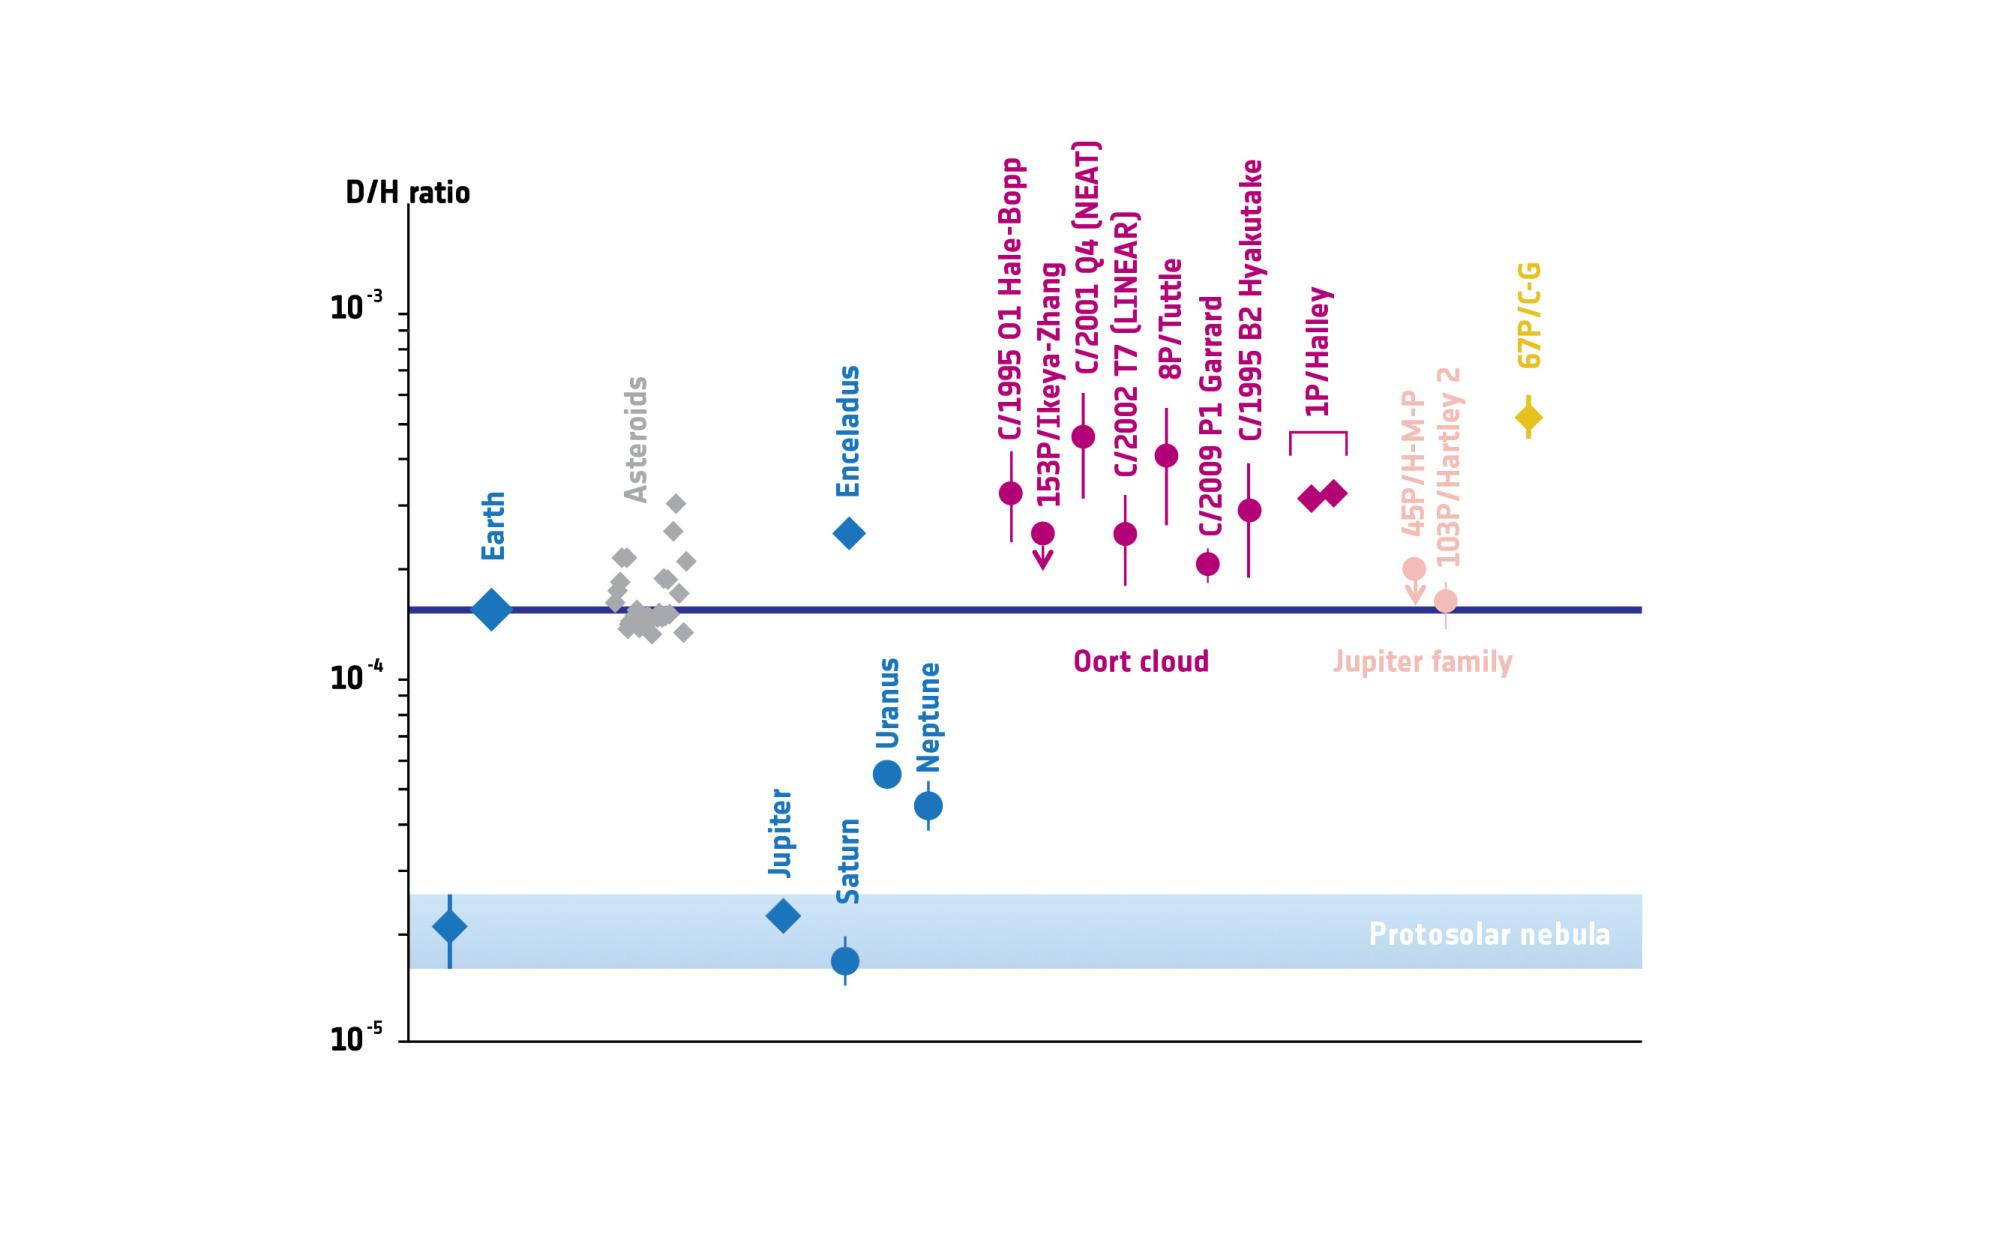 Altwegg et al. 2014 and references therein